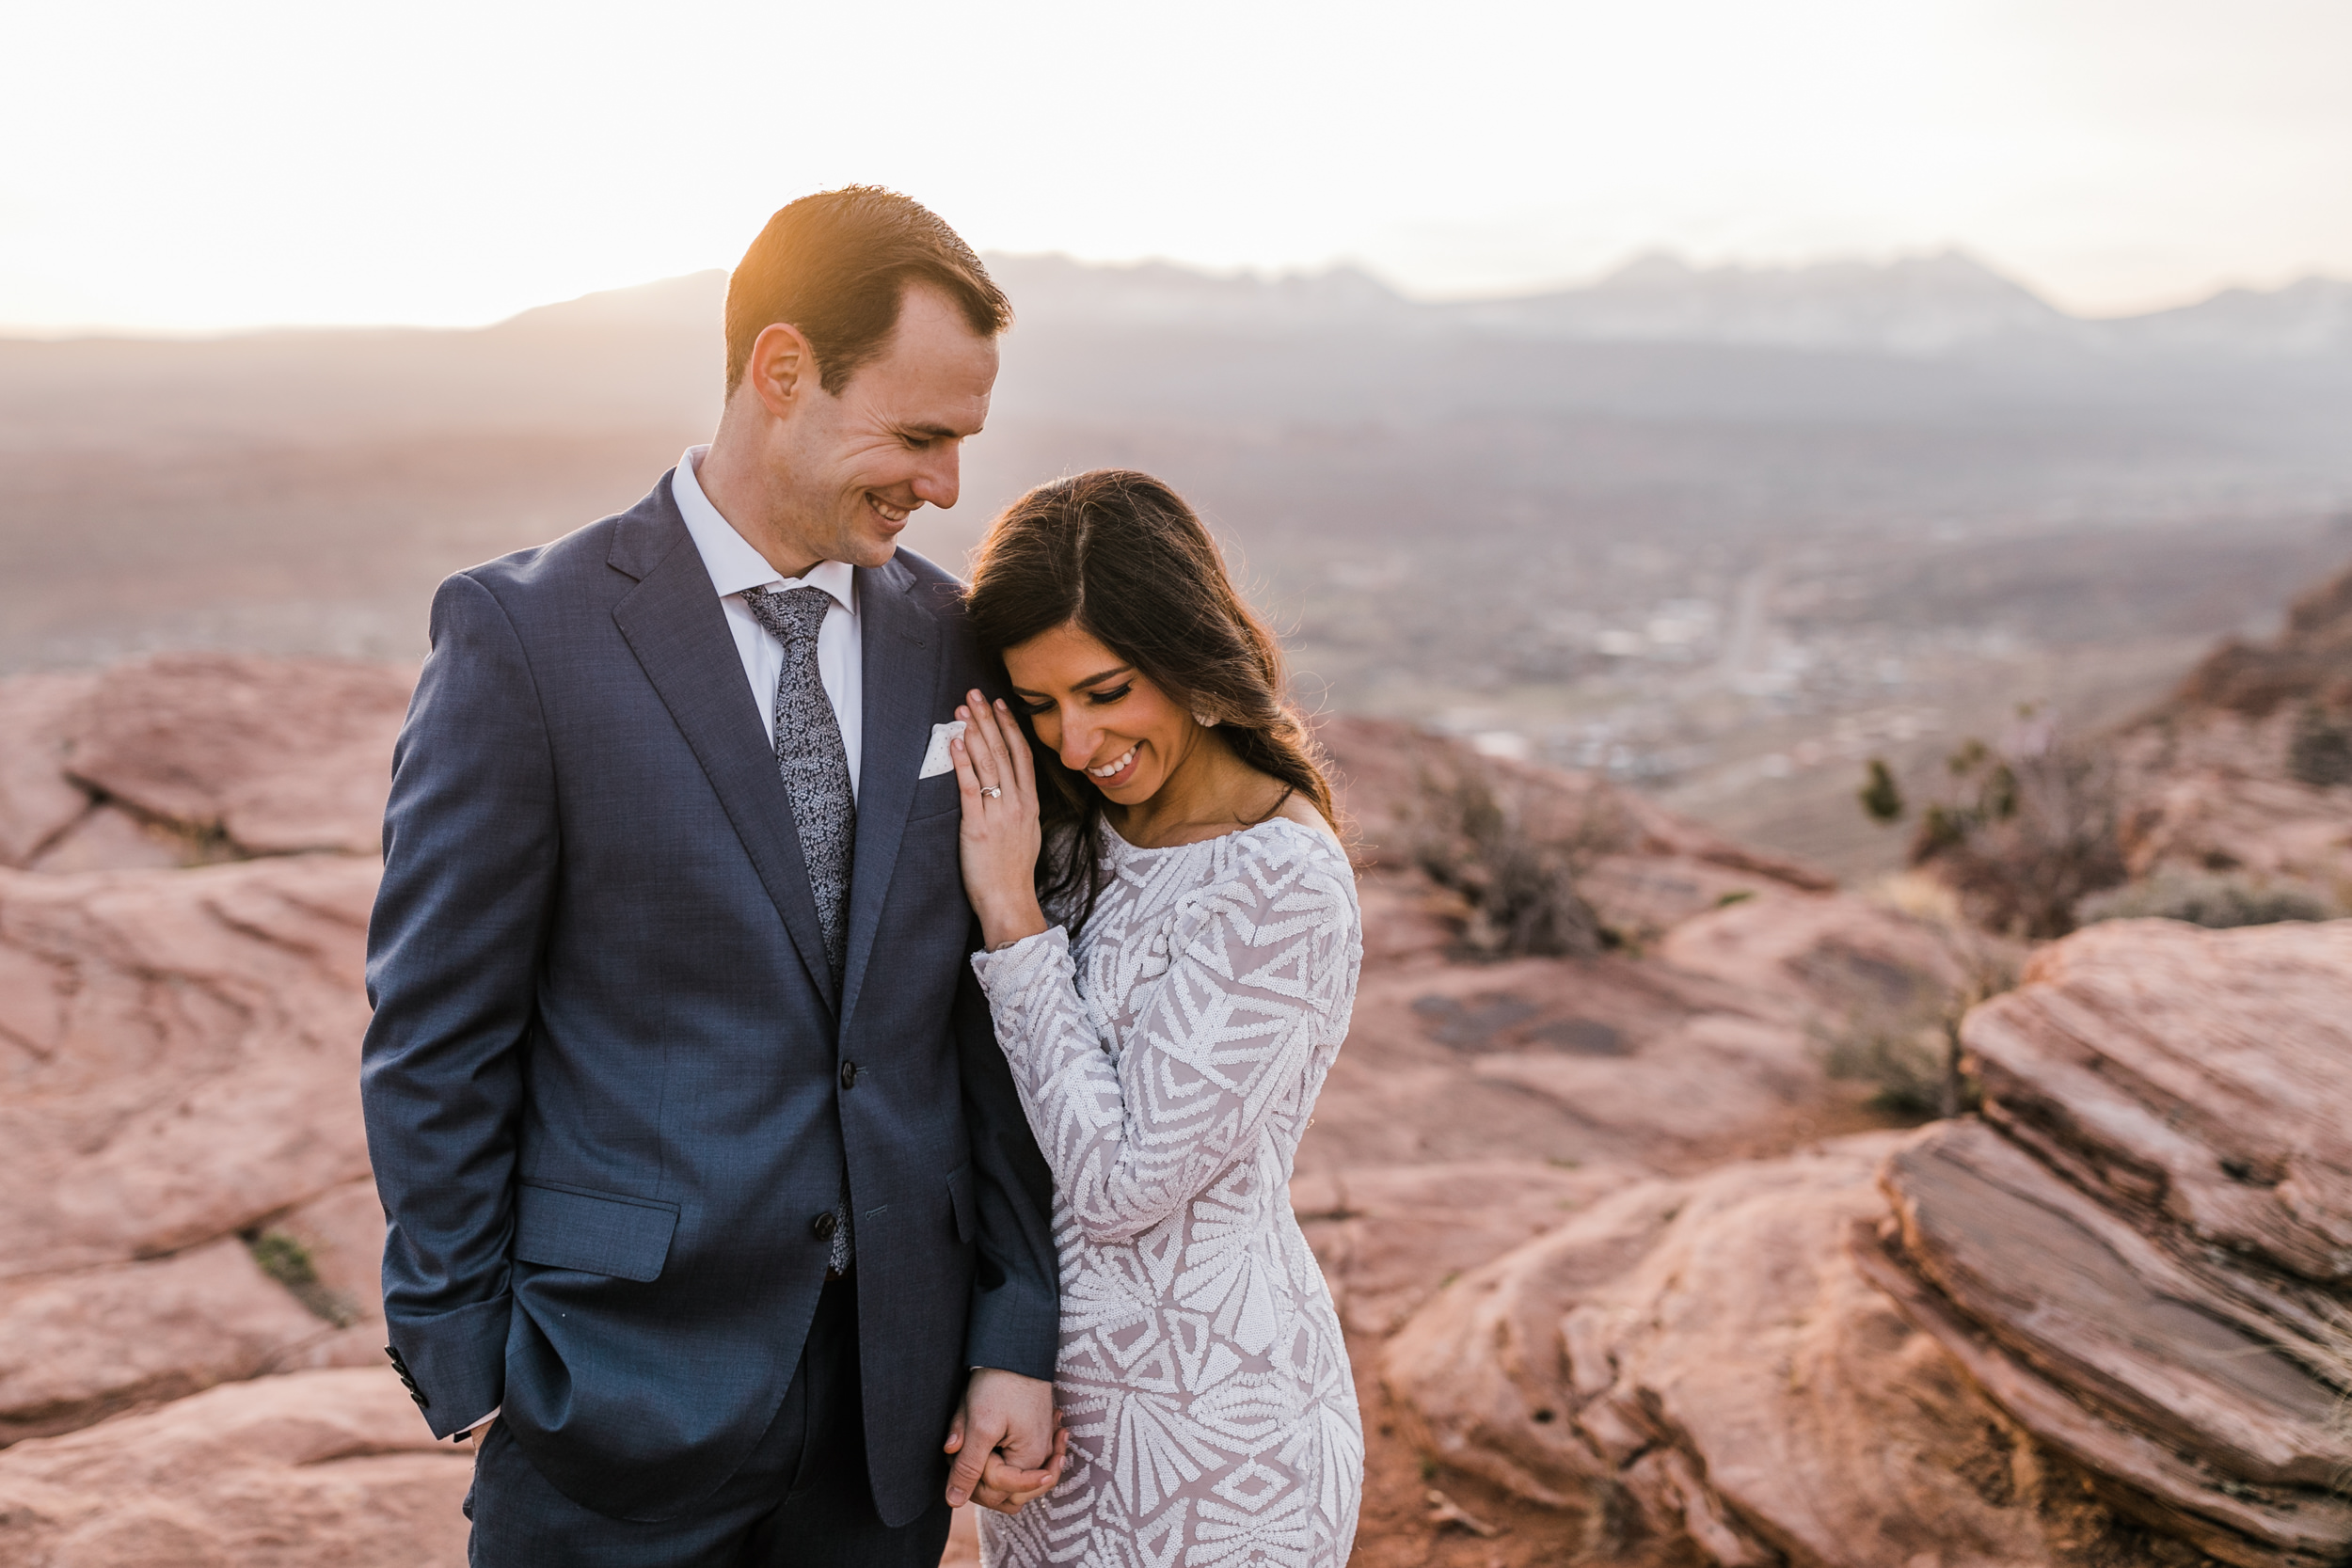 The Hearnes Adventure Wedding in Moab Utah